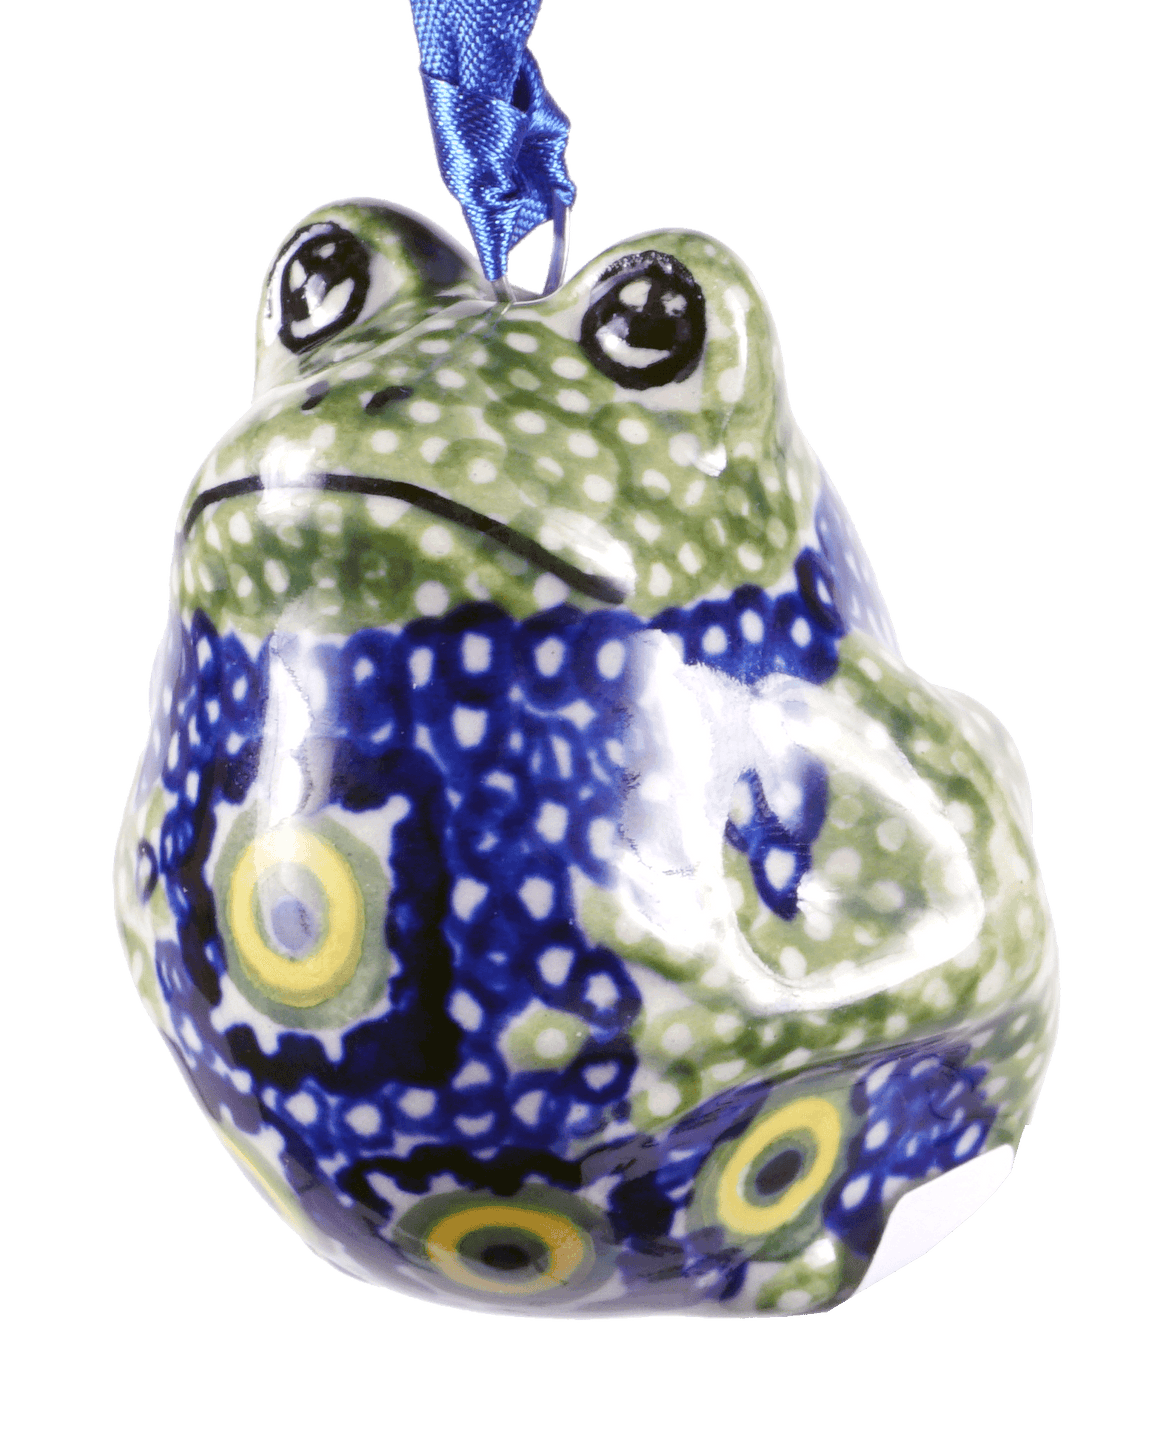 Frog Ornament (Whimsy)